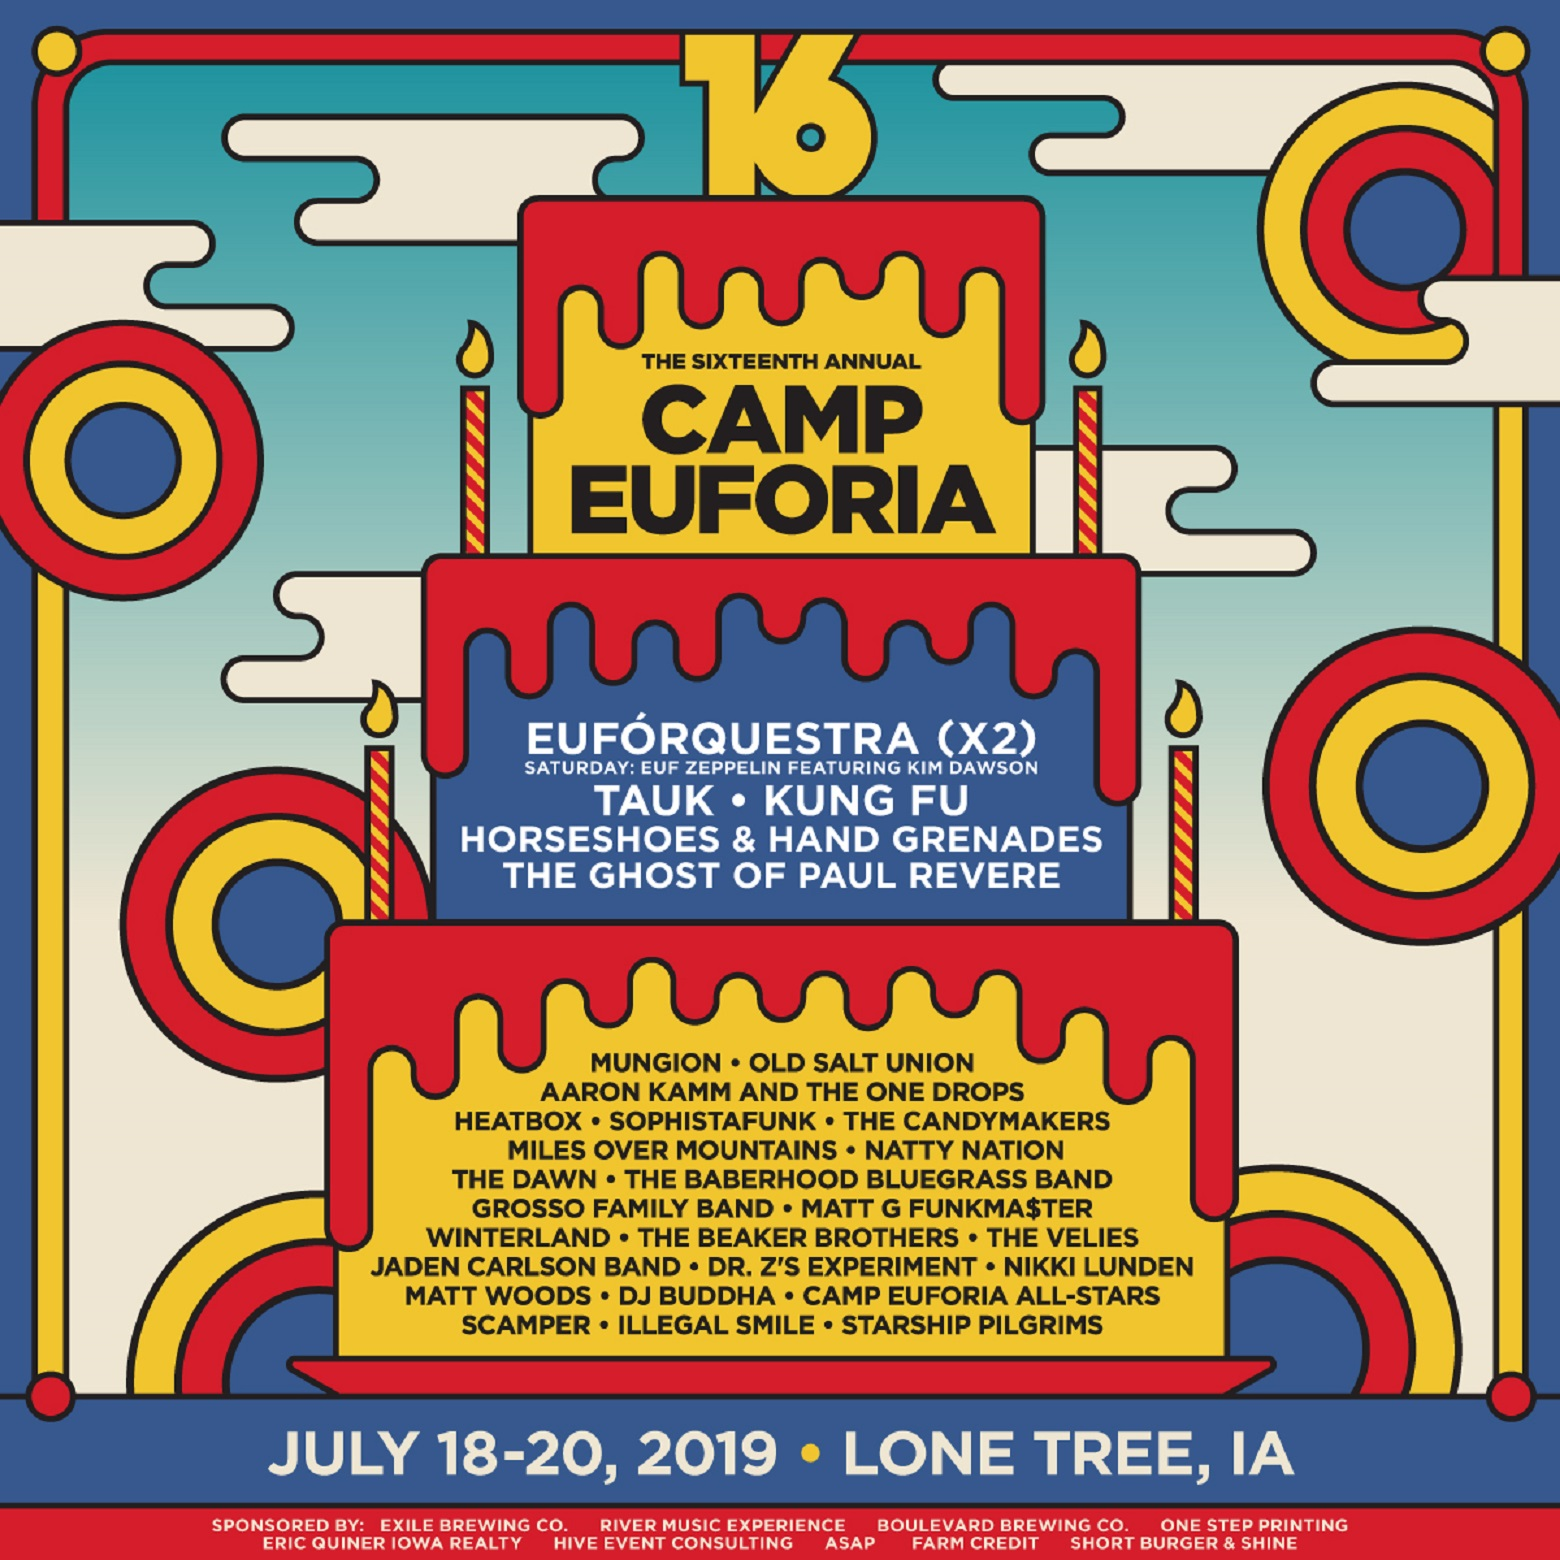 Camp Euforia Music Festival Announces Performance Schedule